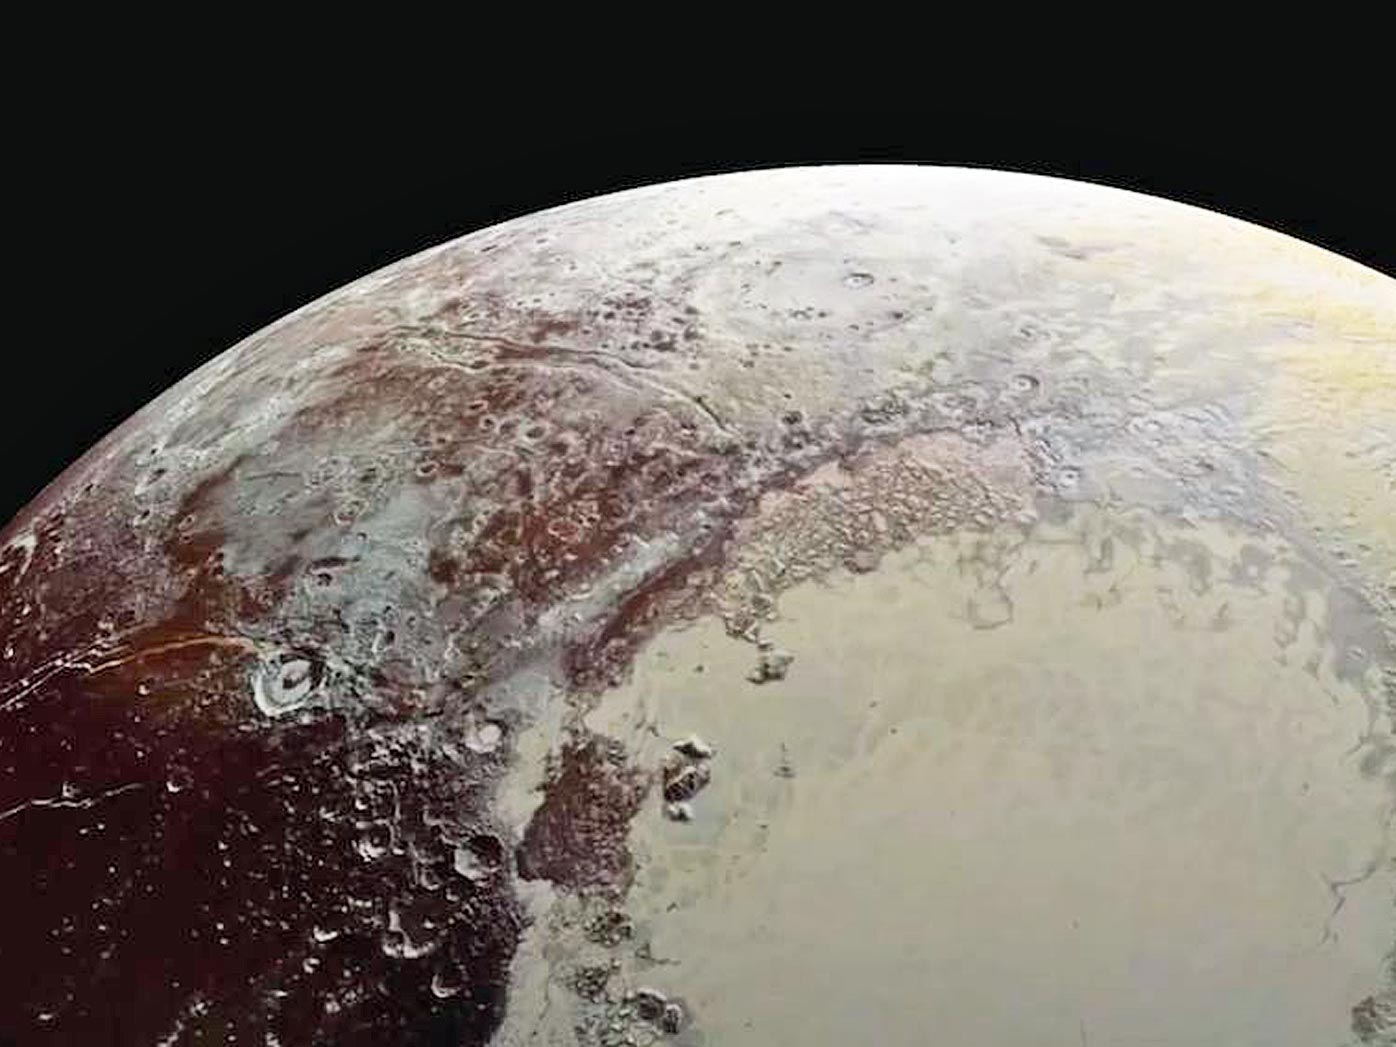 New Horizons is still transmitting data from its encounter with Pluto. (The new imagery may reveal one of the largest cryovolcanoes in the solar system. (NASA)